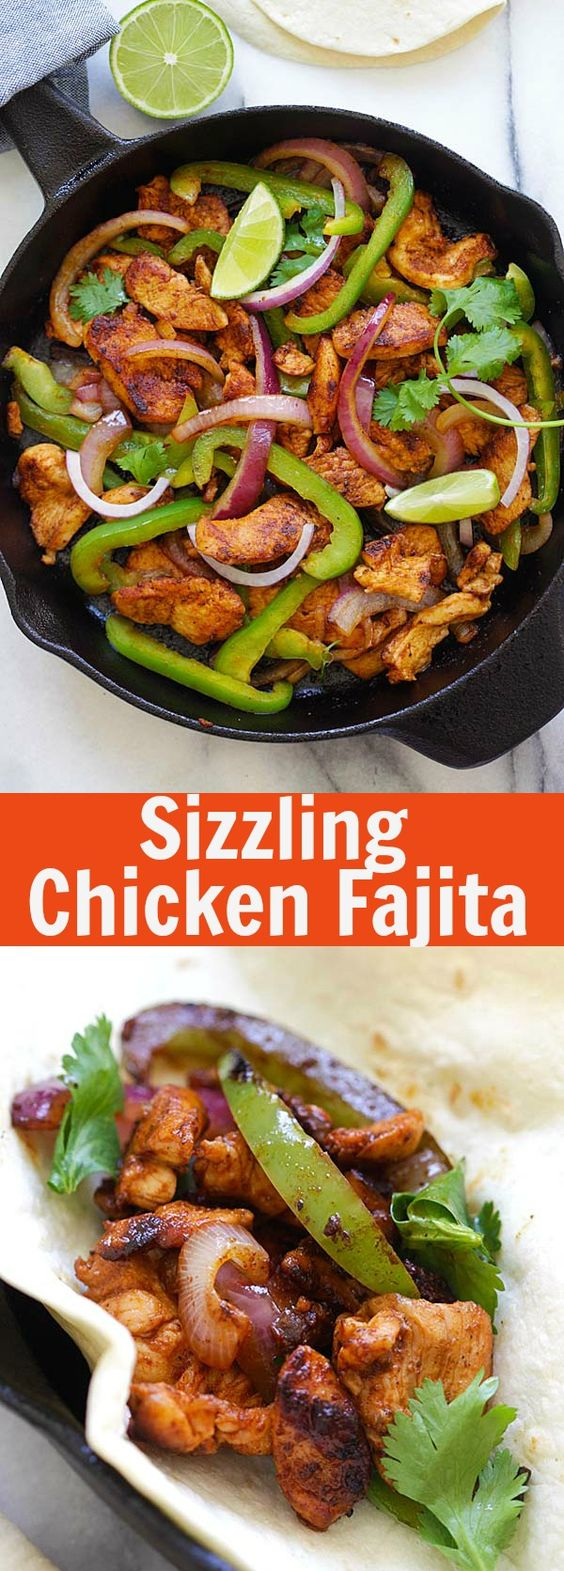 Chicken Fajita cooked in a sizzling cast-iron skillet. This Mexican favorite is so easy with homemade Fajita seasoning. Serve the juicy chicken with warm tortilla for a complete meal | rasamalaysia.com